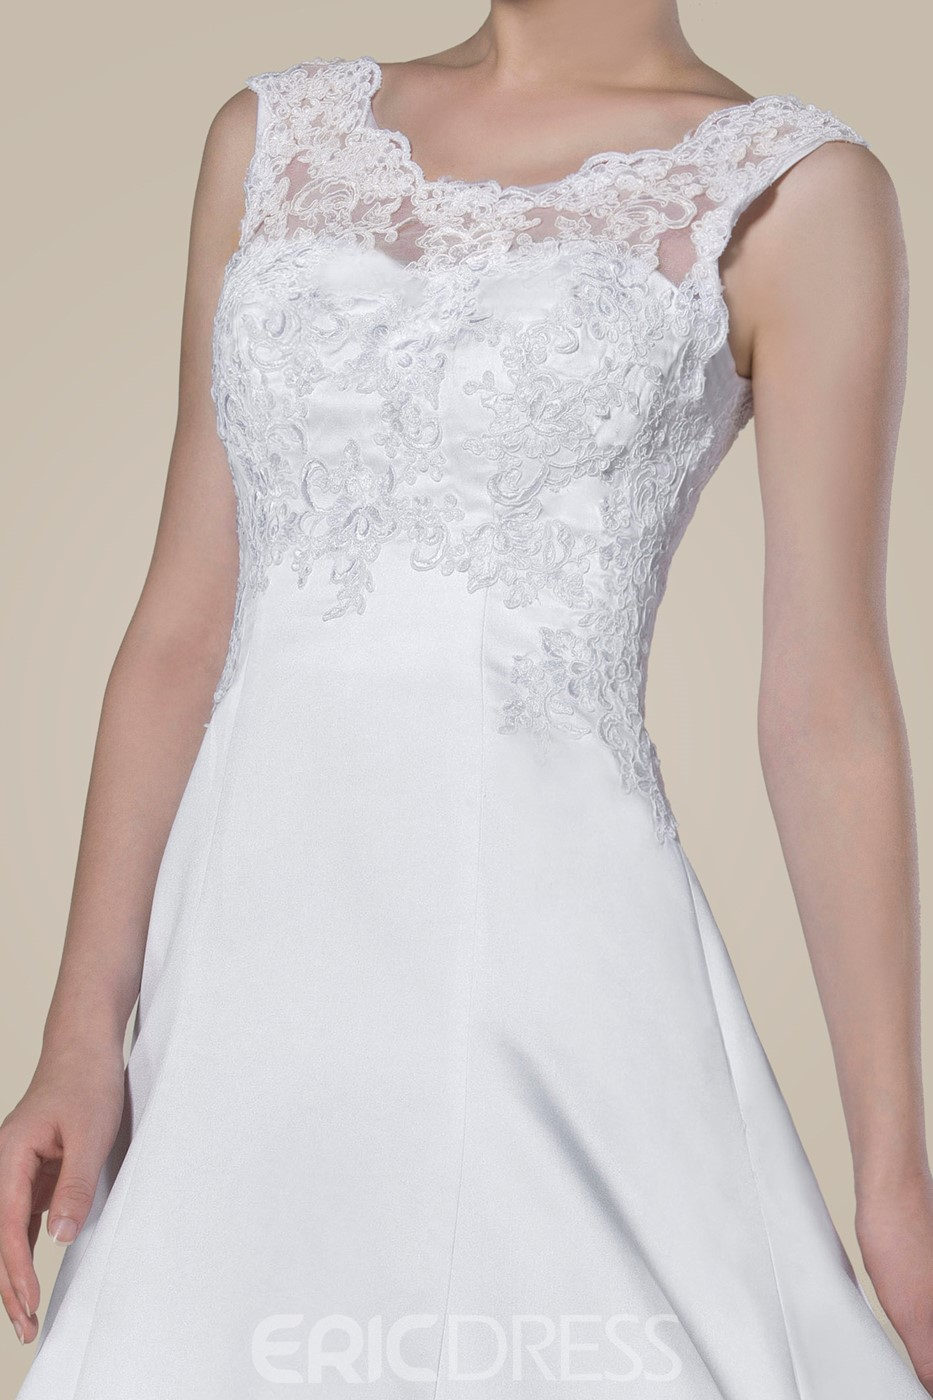 Fashion Concise Lace Sleeveless Chapel Train Wedding dress